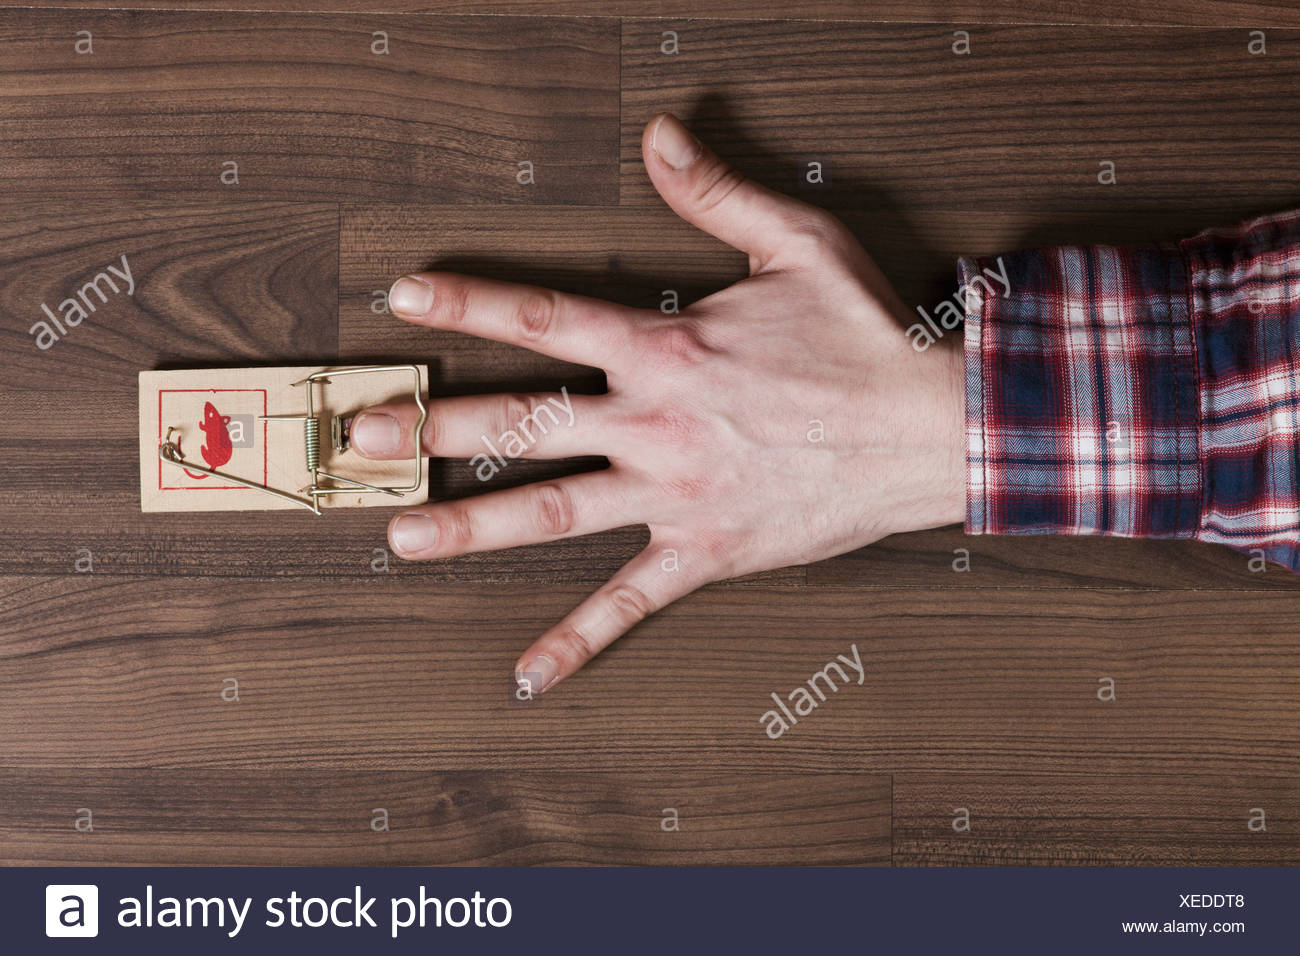 A man's finger trapped in a mousetrap, close-up of hand - Stock Image